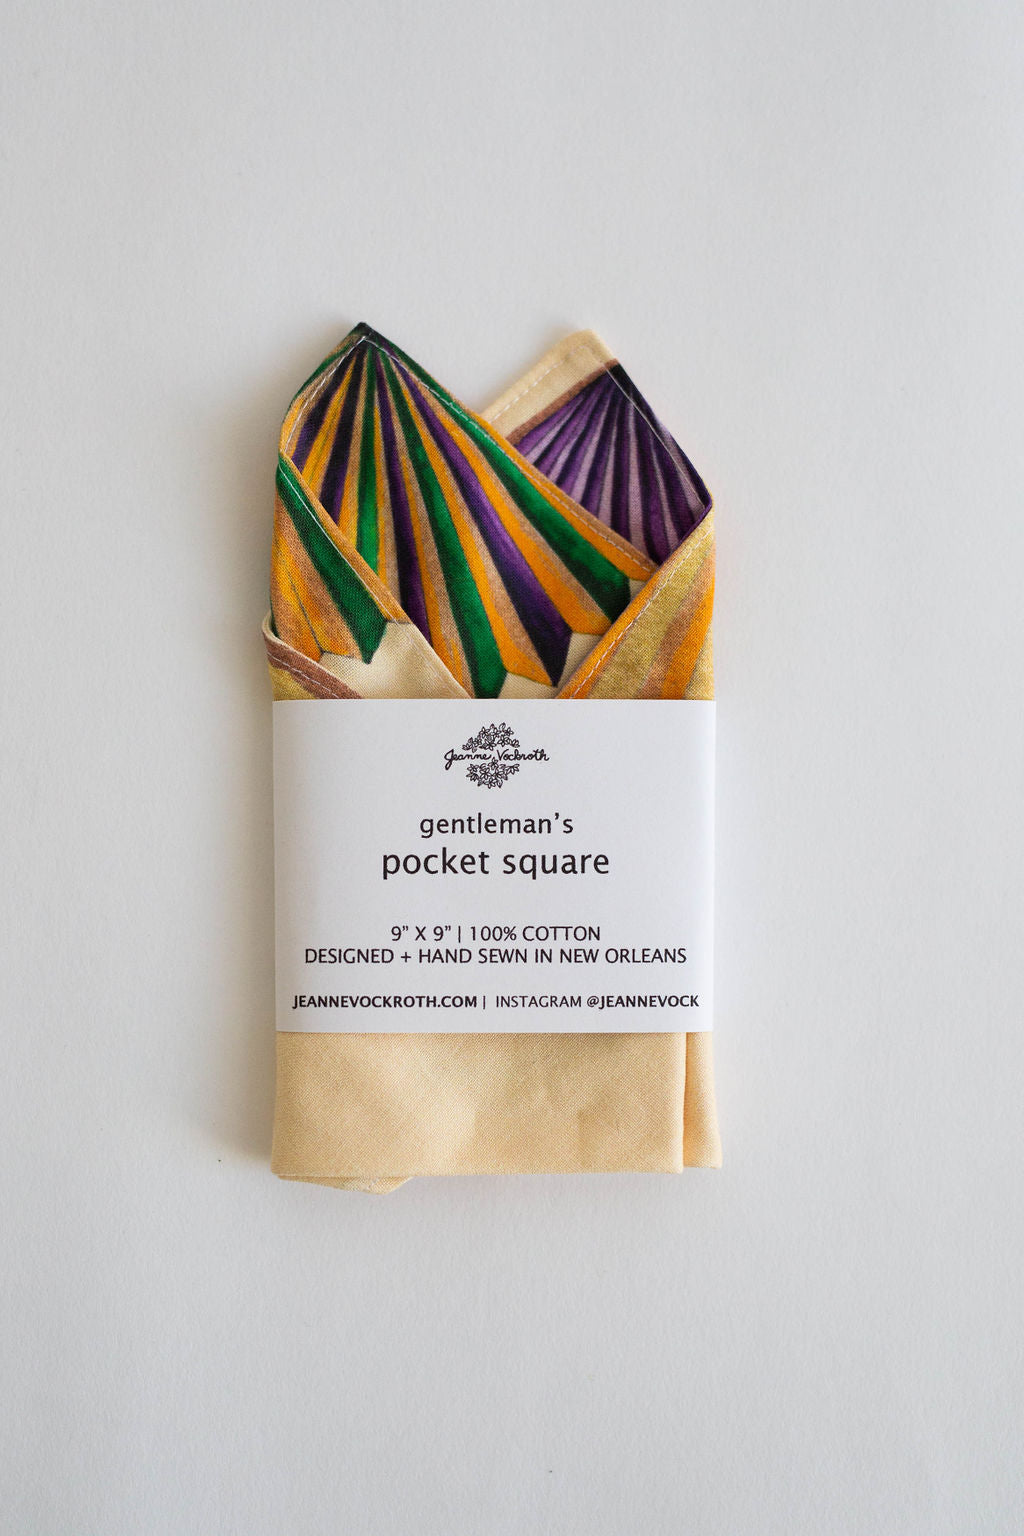 Mardi Gras Gentleman's Pocket Square in Yellow